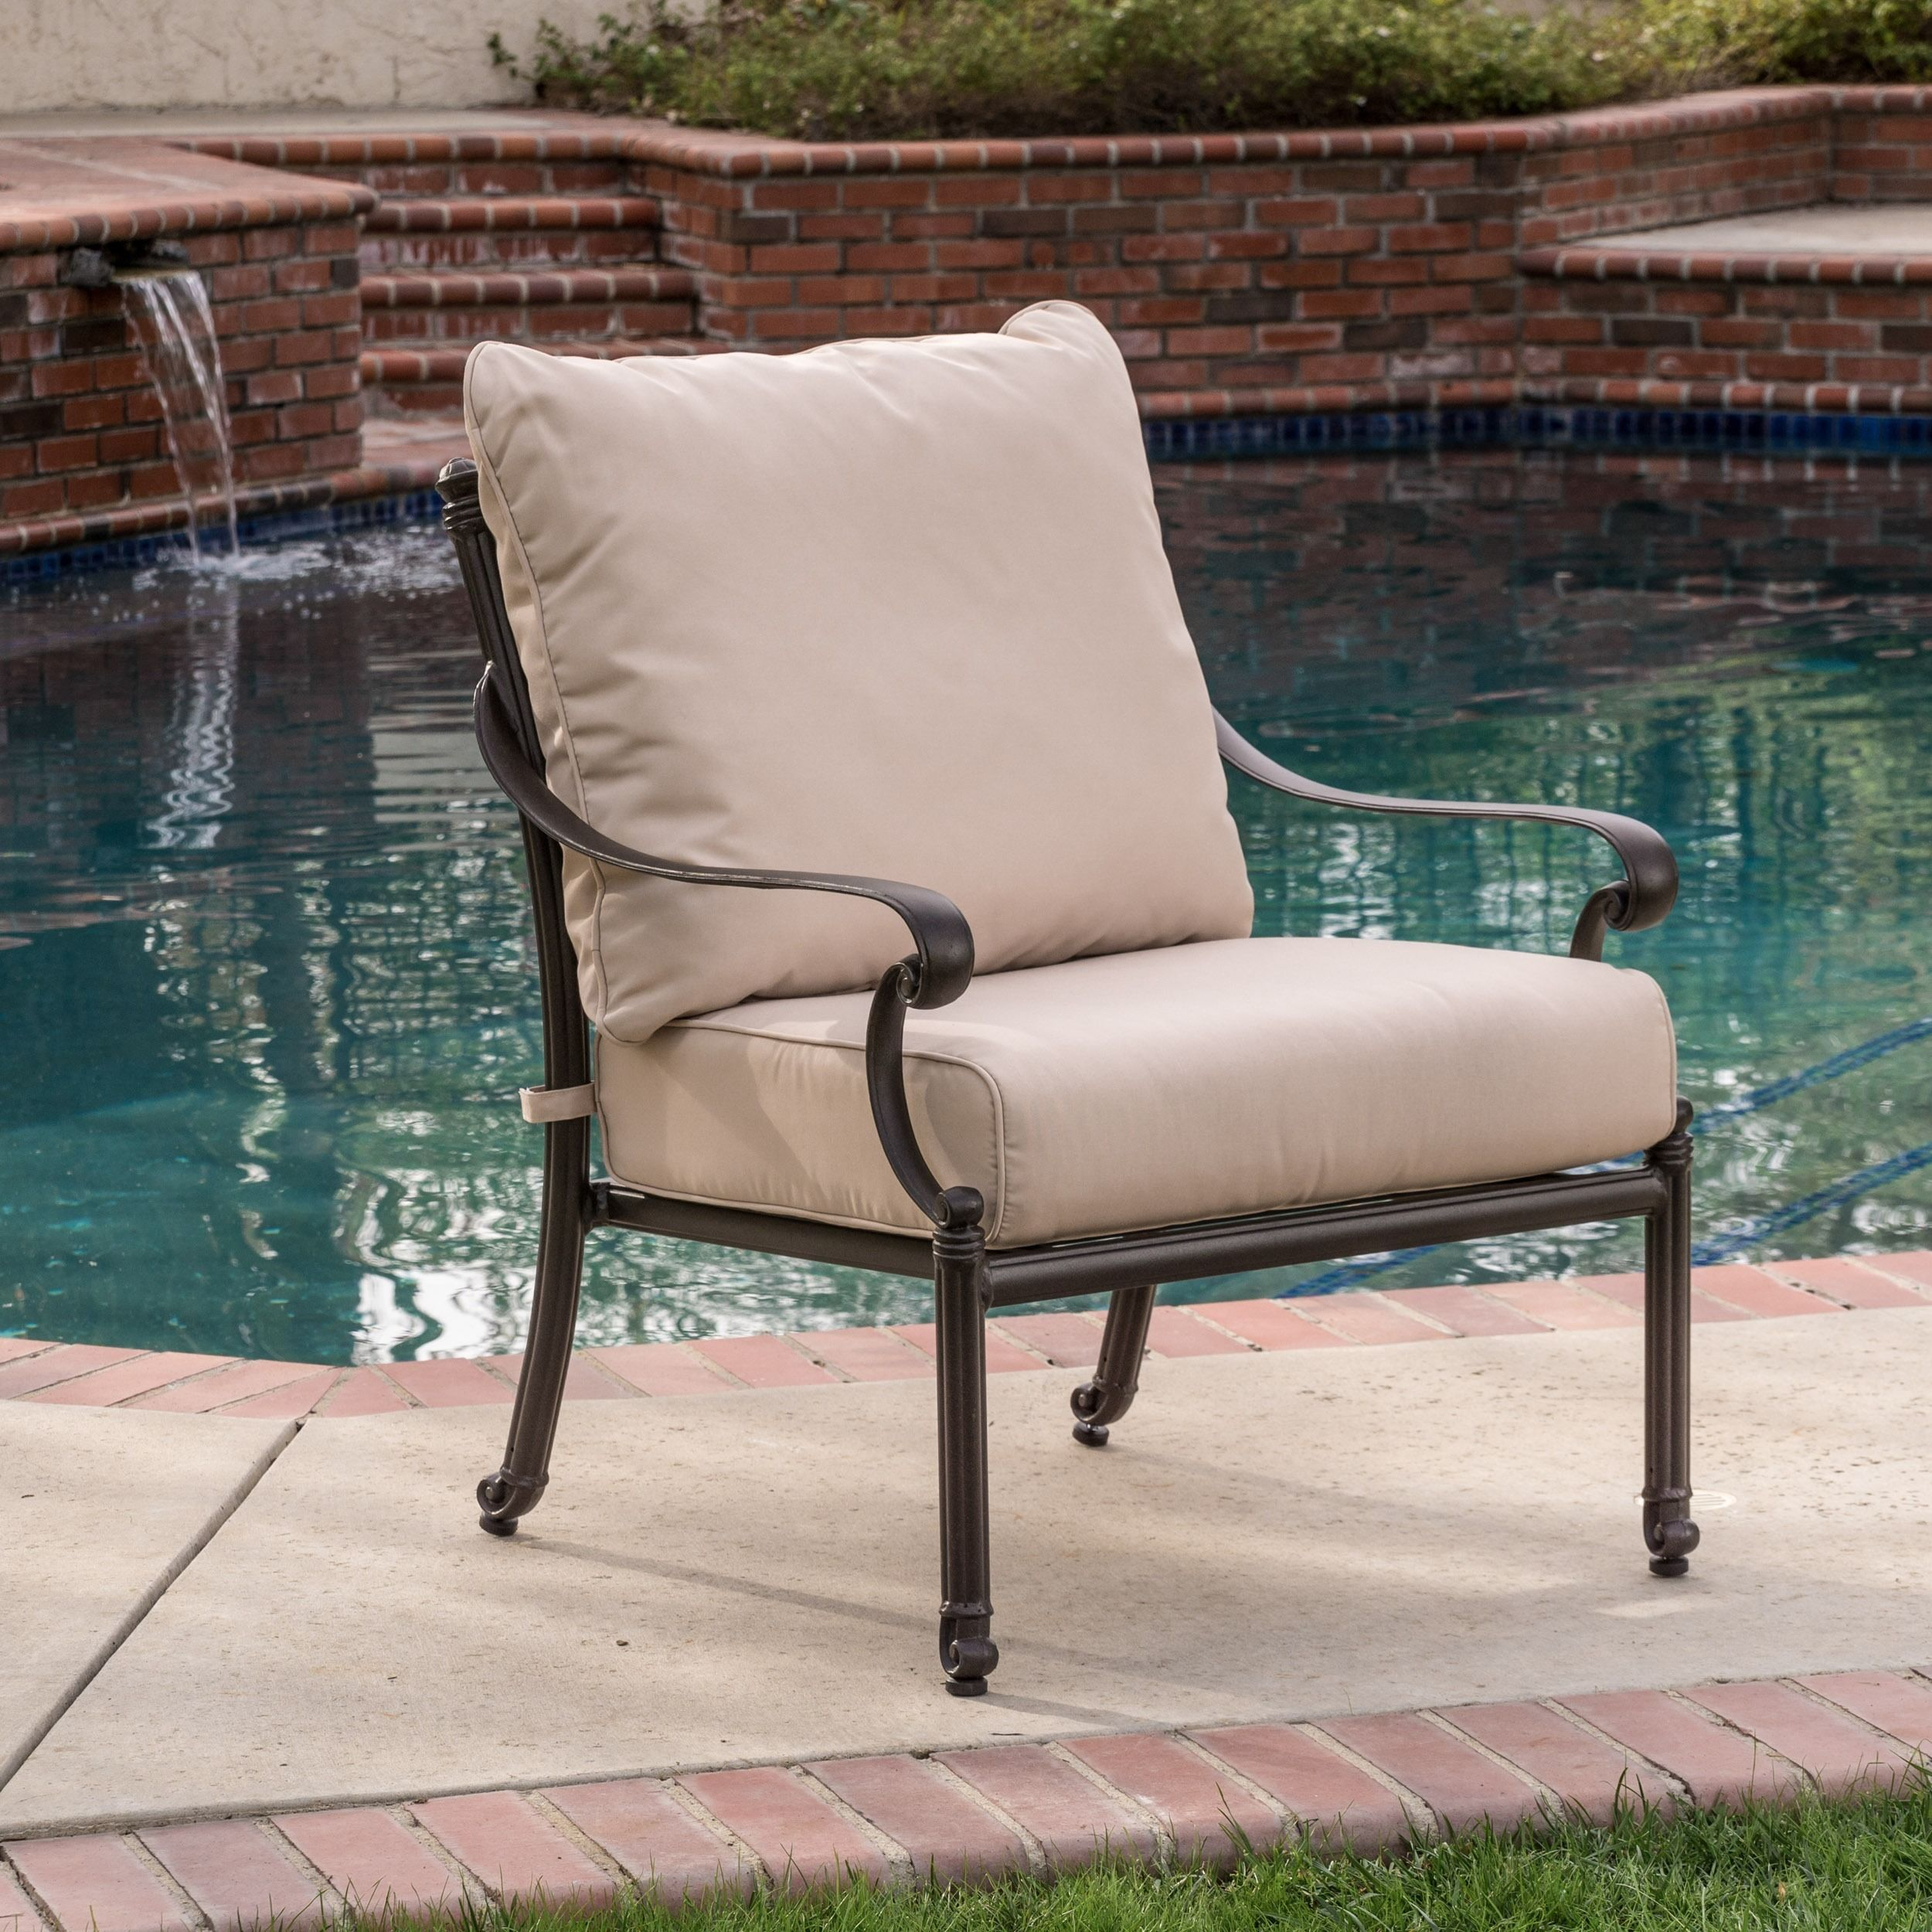 Hemingway Outdoor Armchair by Christopher Knight Home by